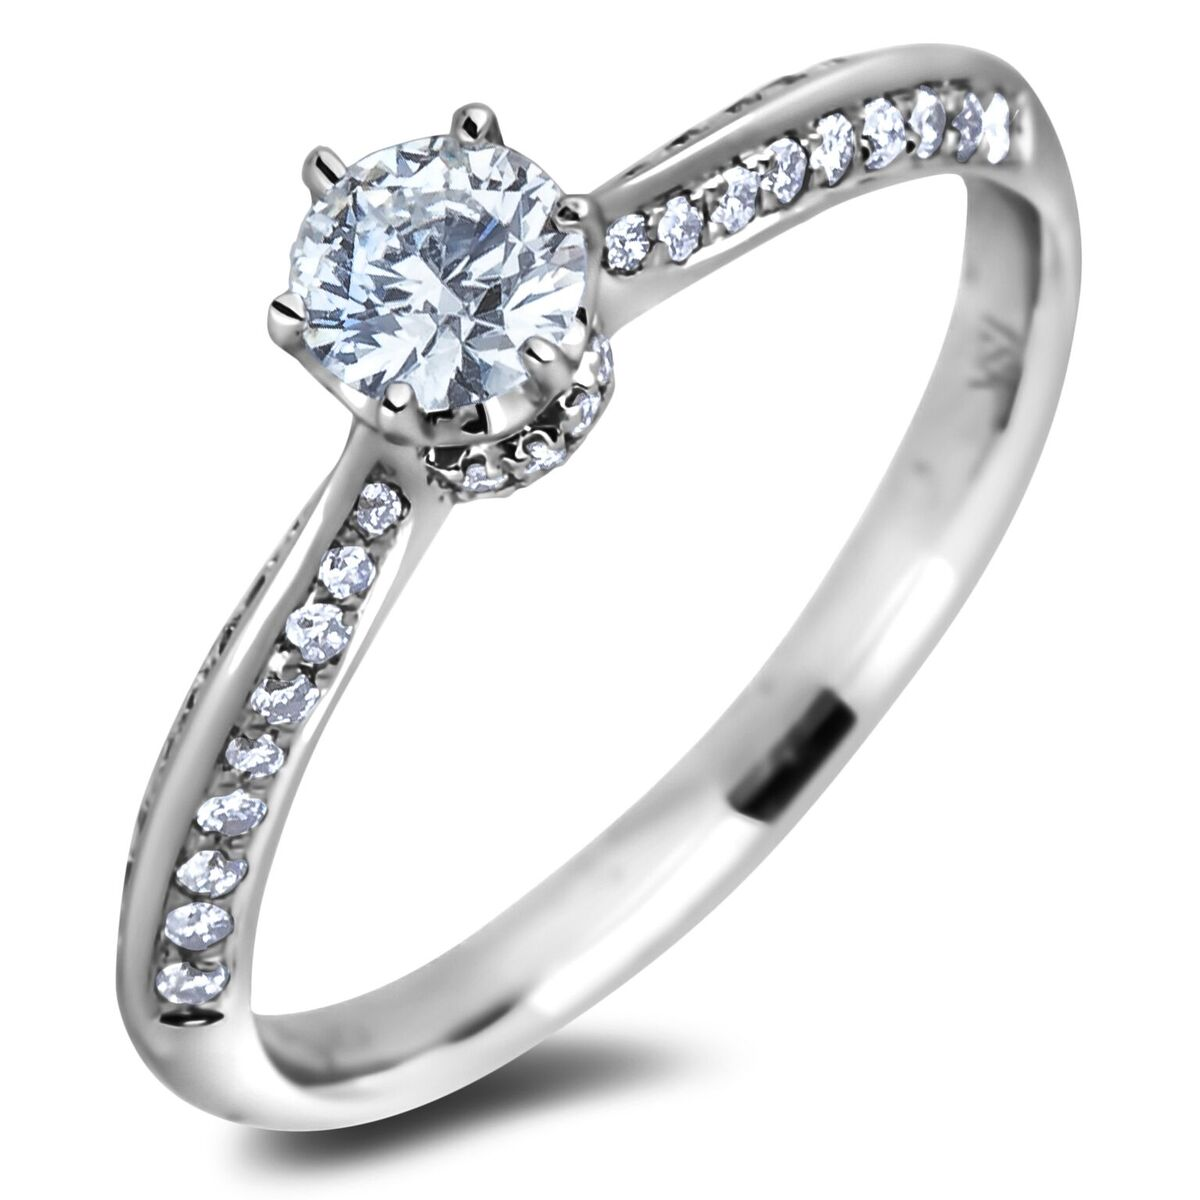 Diamond Engagement Rings AFR1125035 (Rings)